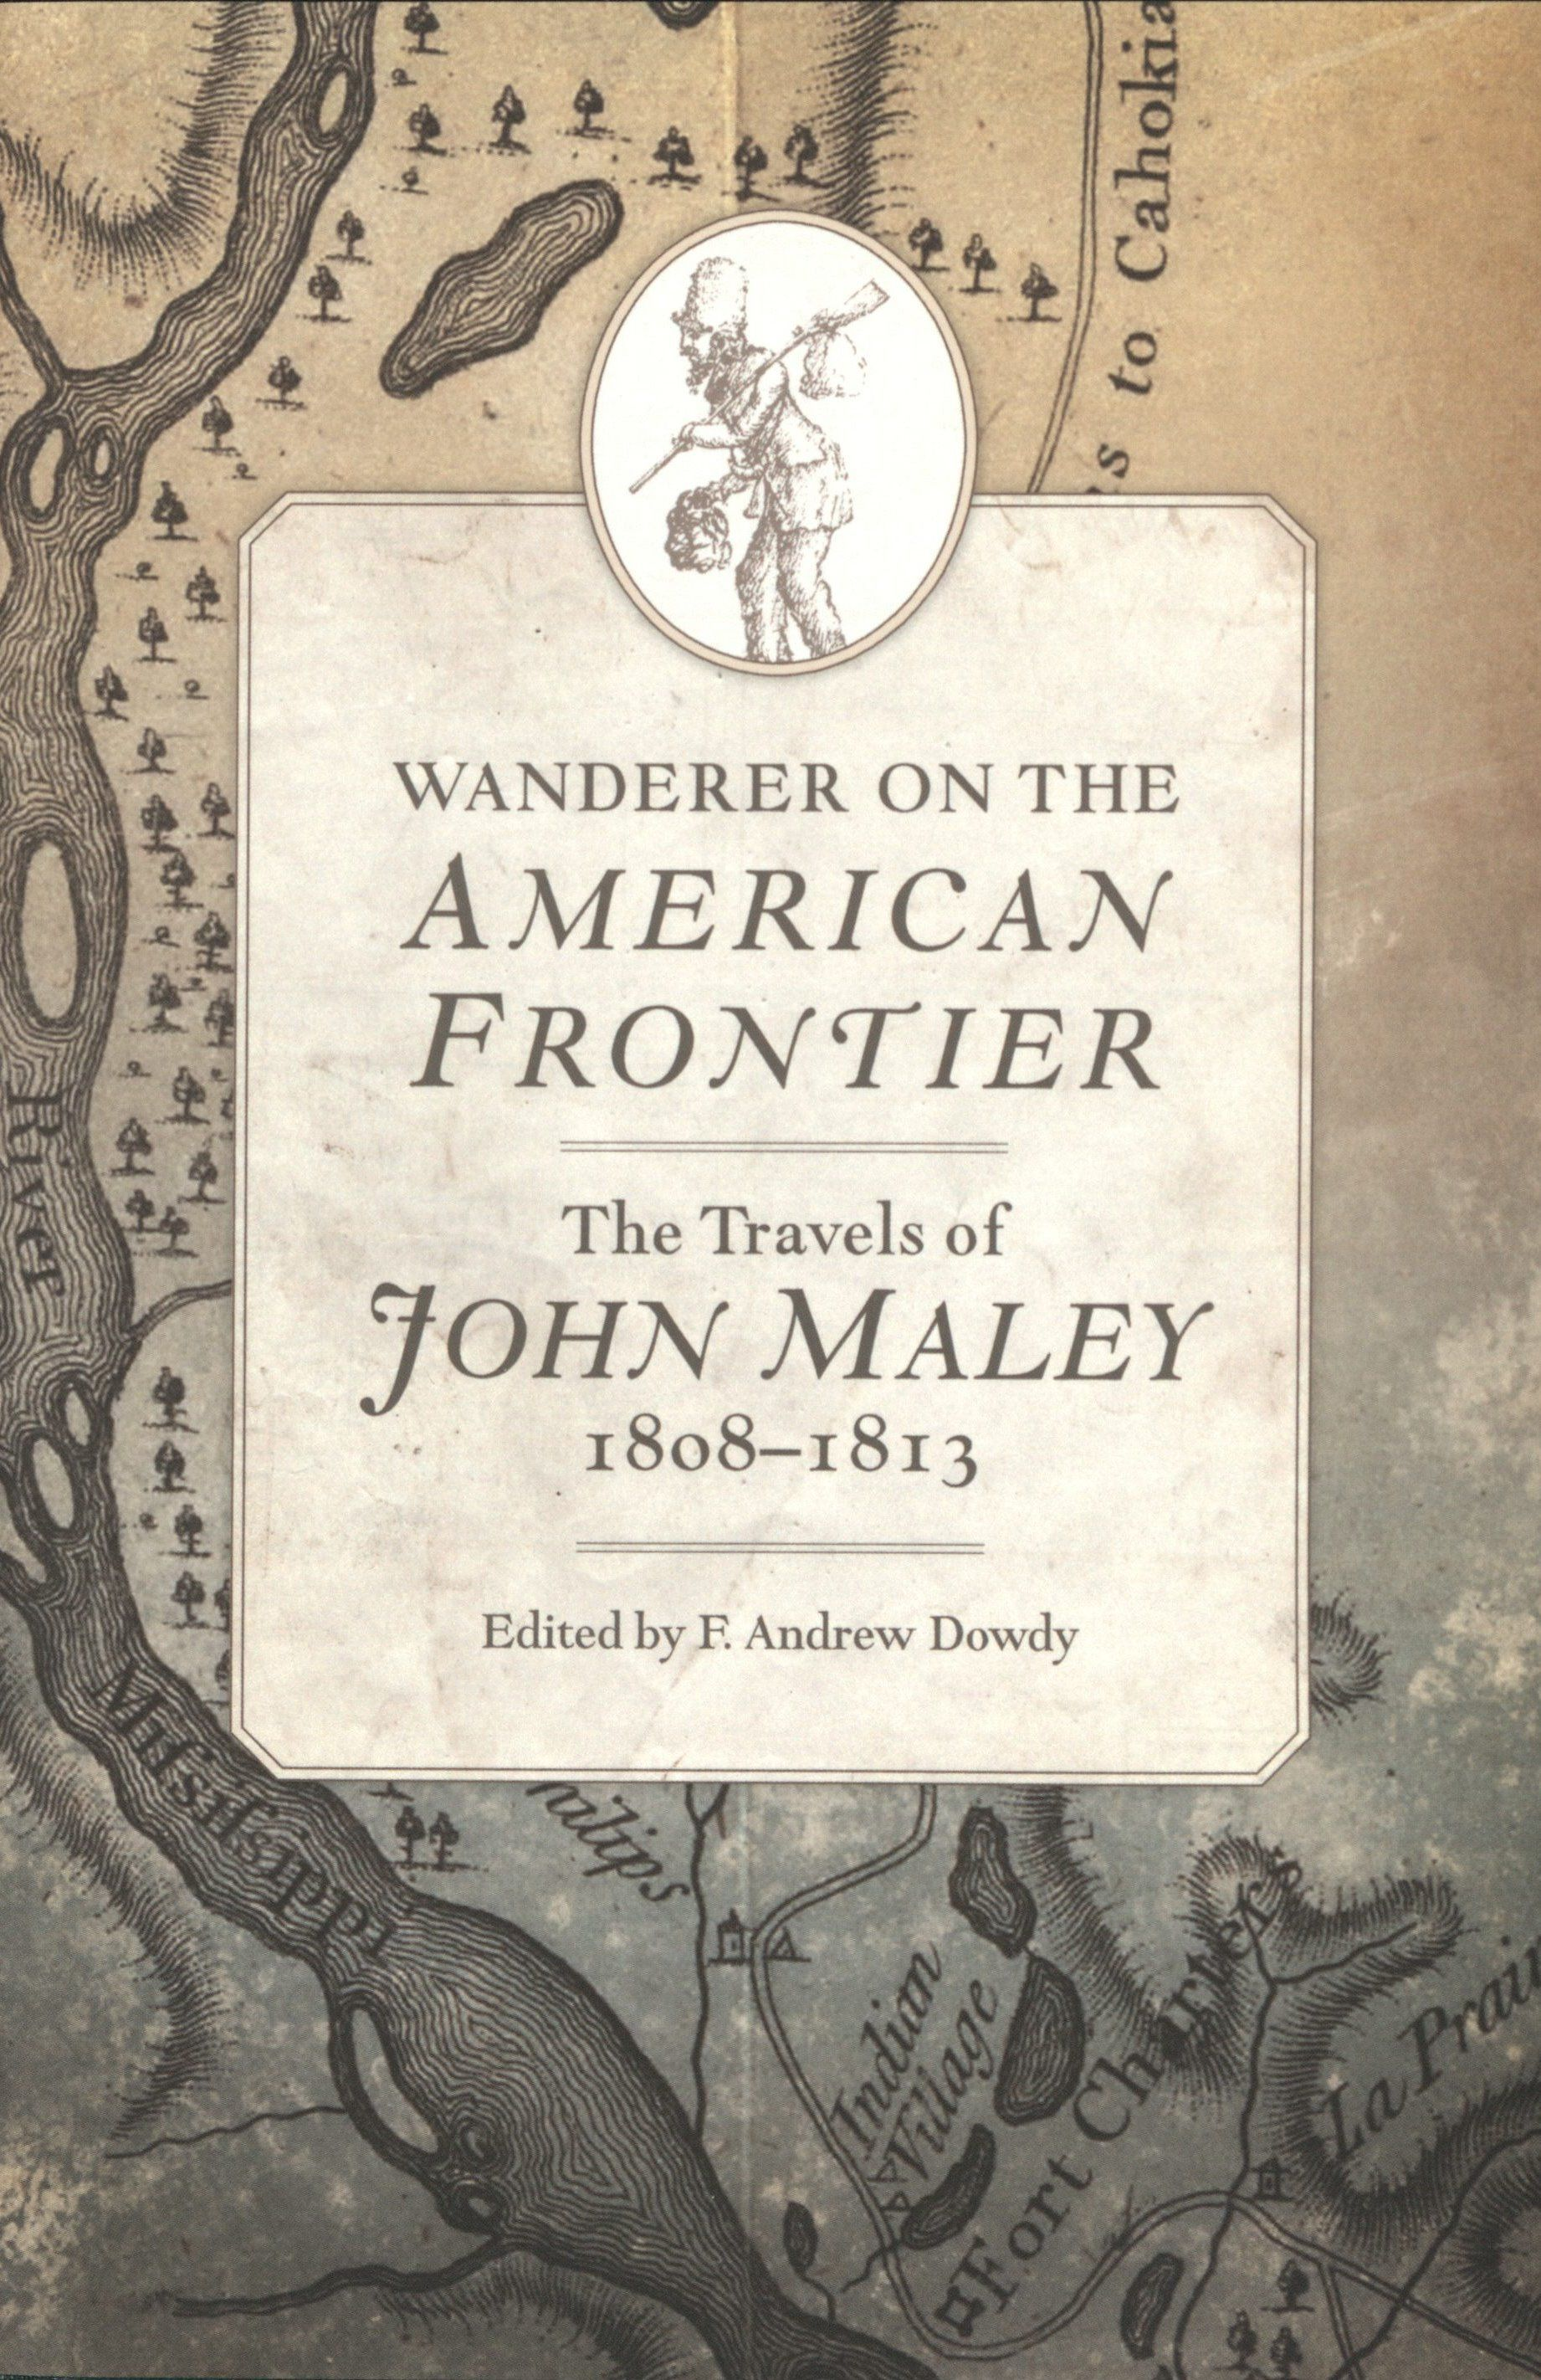 Dowdy, F. Andrew, ed. Wanderer on the American Frontier: The Travels of John Maley, 1808-1813. Norman: University of Oklahoma Press, 2018. Print.